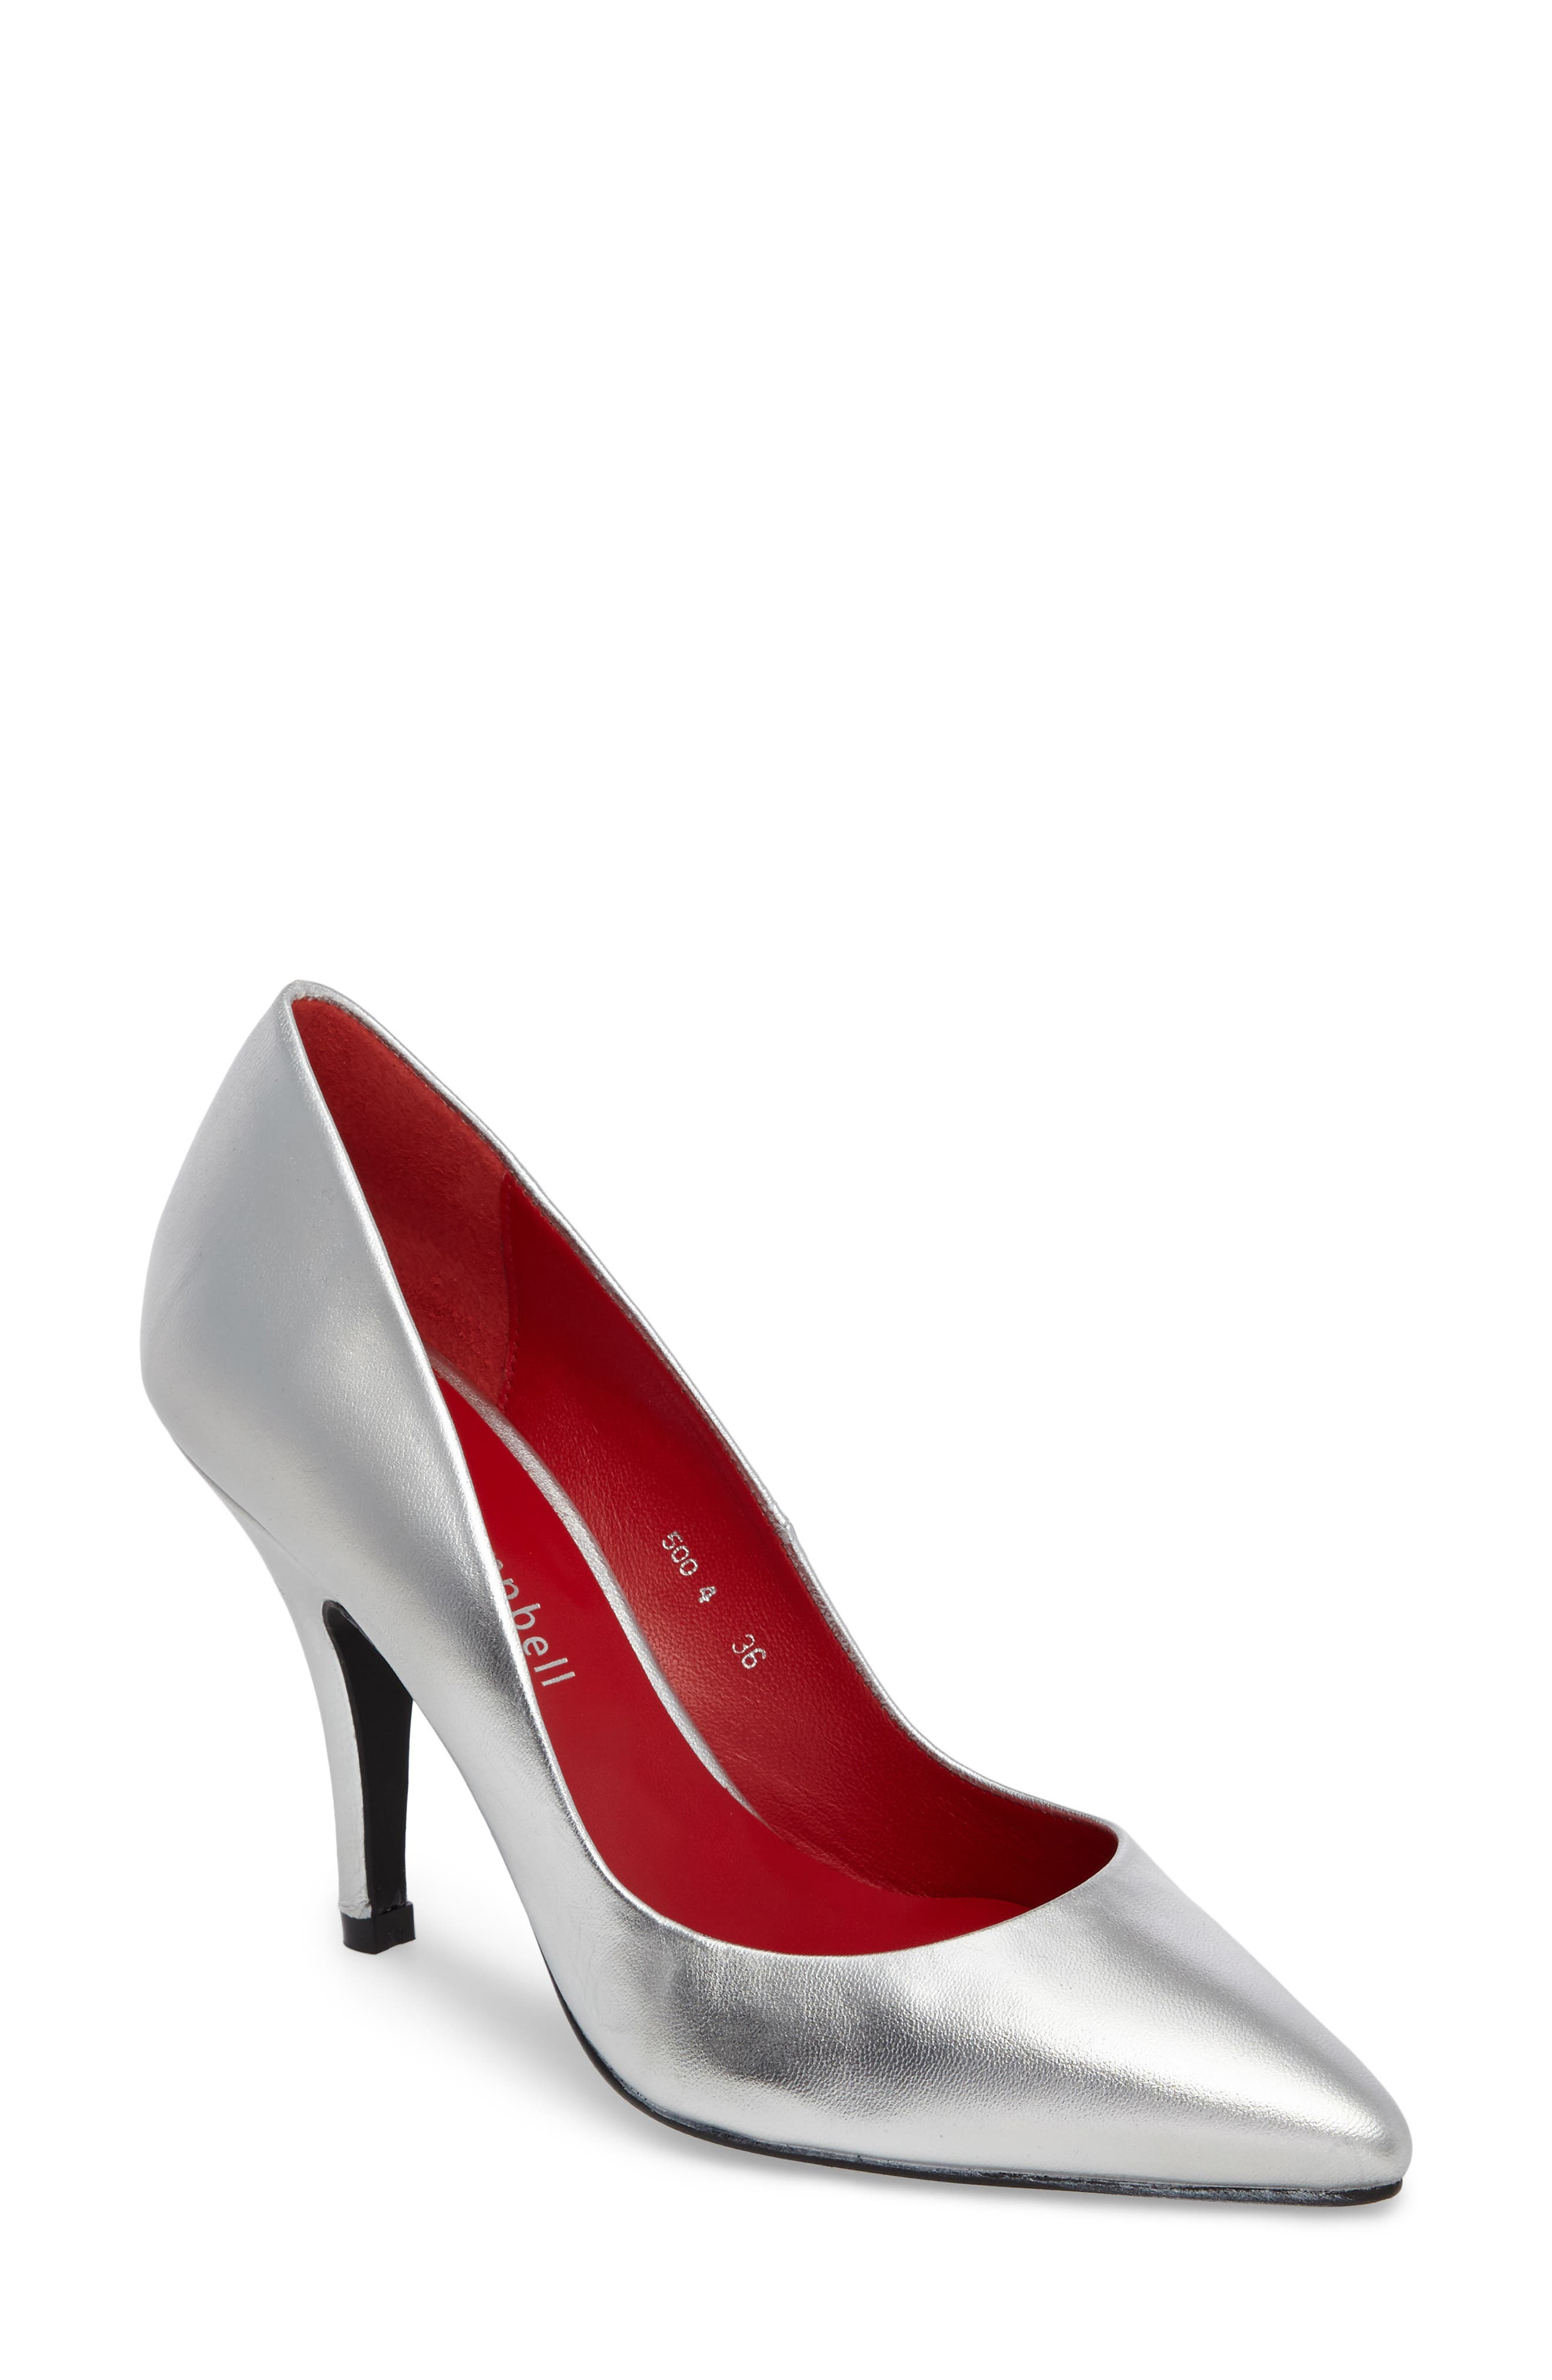 Alternate Image 1 Selected - Jeffrey Campbell Sachi Pointy Toe Pump (Women)